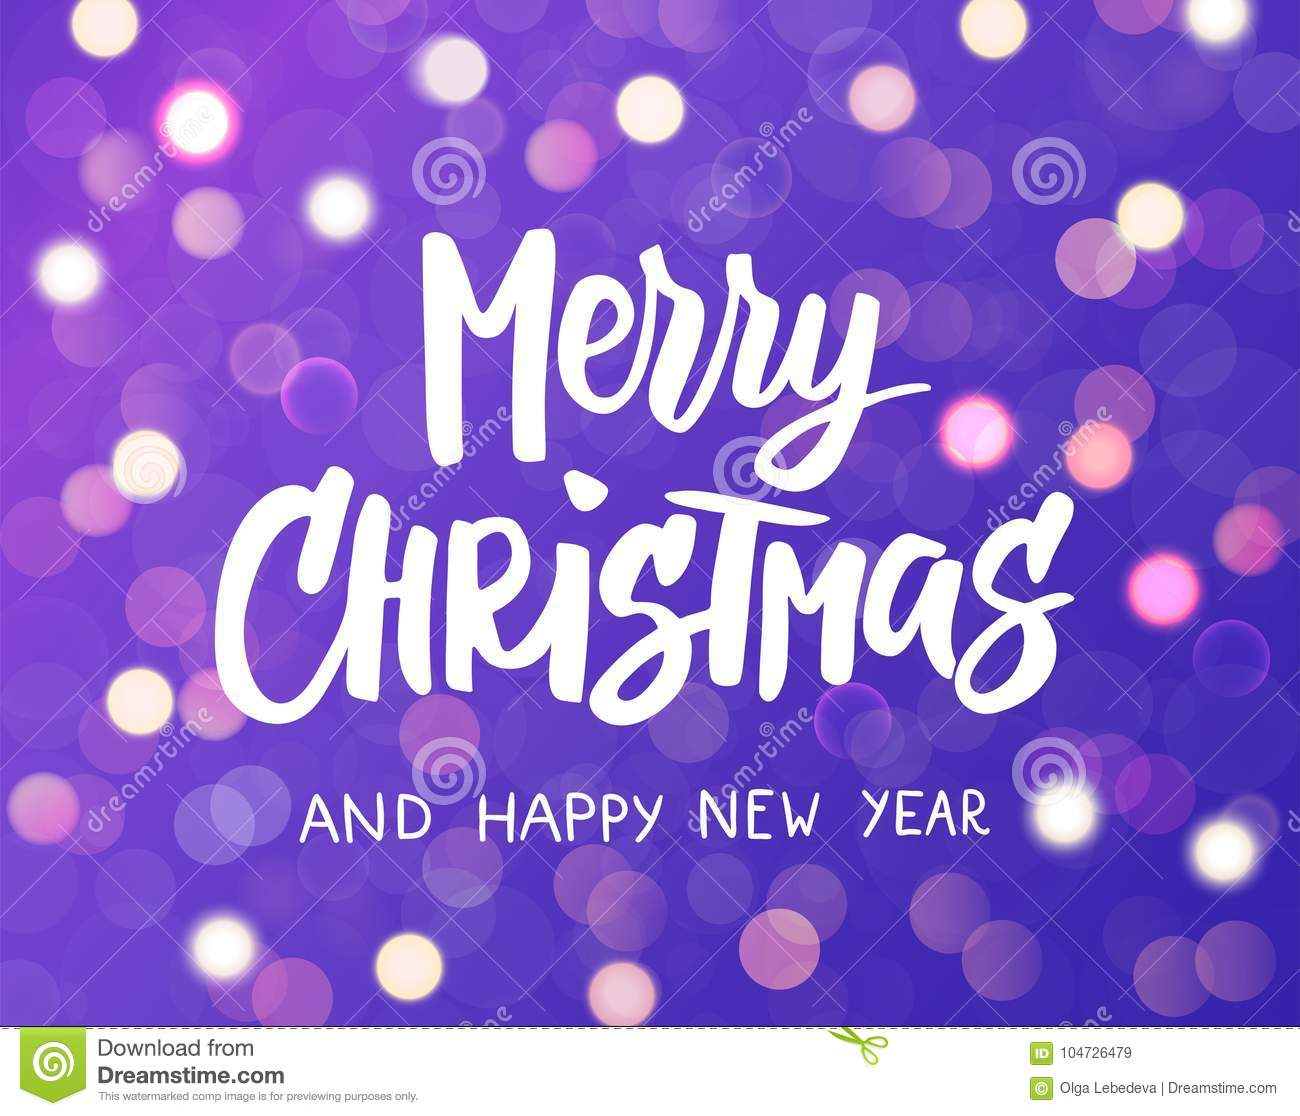 Merry Christmas And Happy New Year Text Holiday Greetings Quote